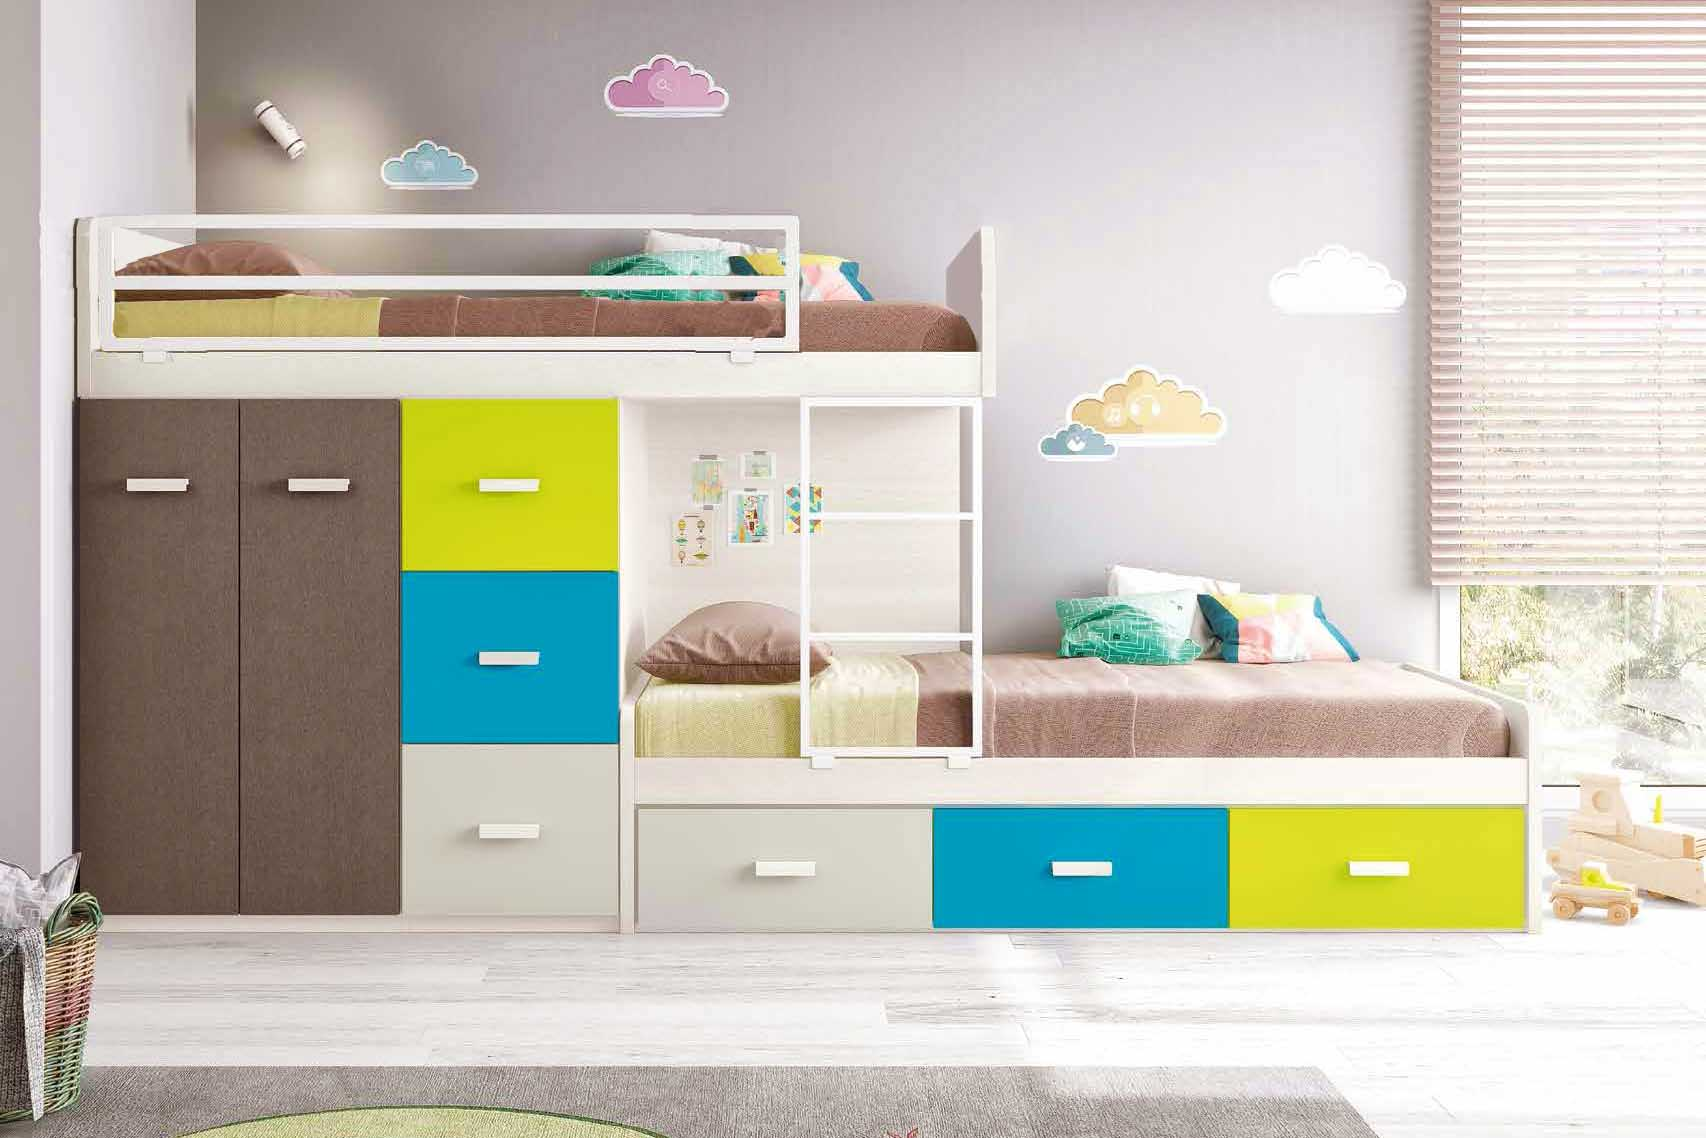 lit superpos enfant pour une chambre enfant fun. Black Bedroom Furniture Sets. Home Design Ideas